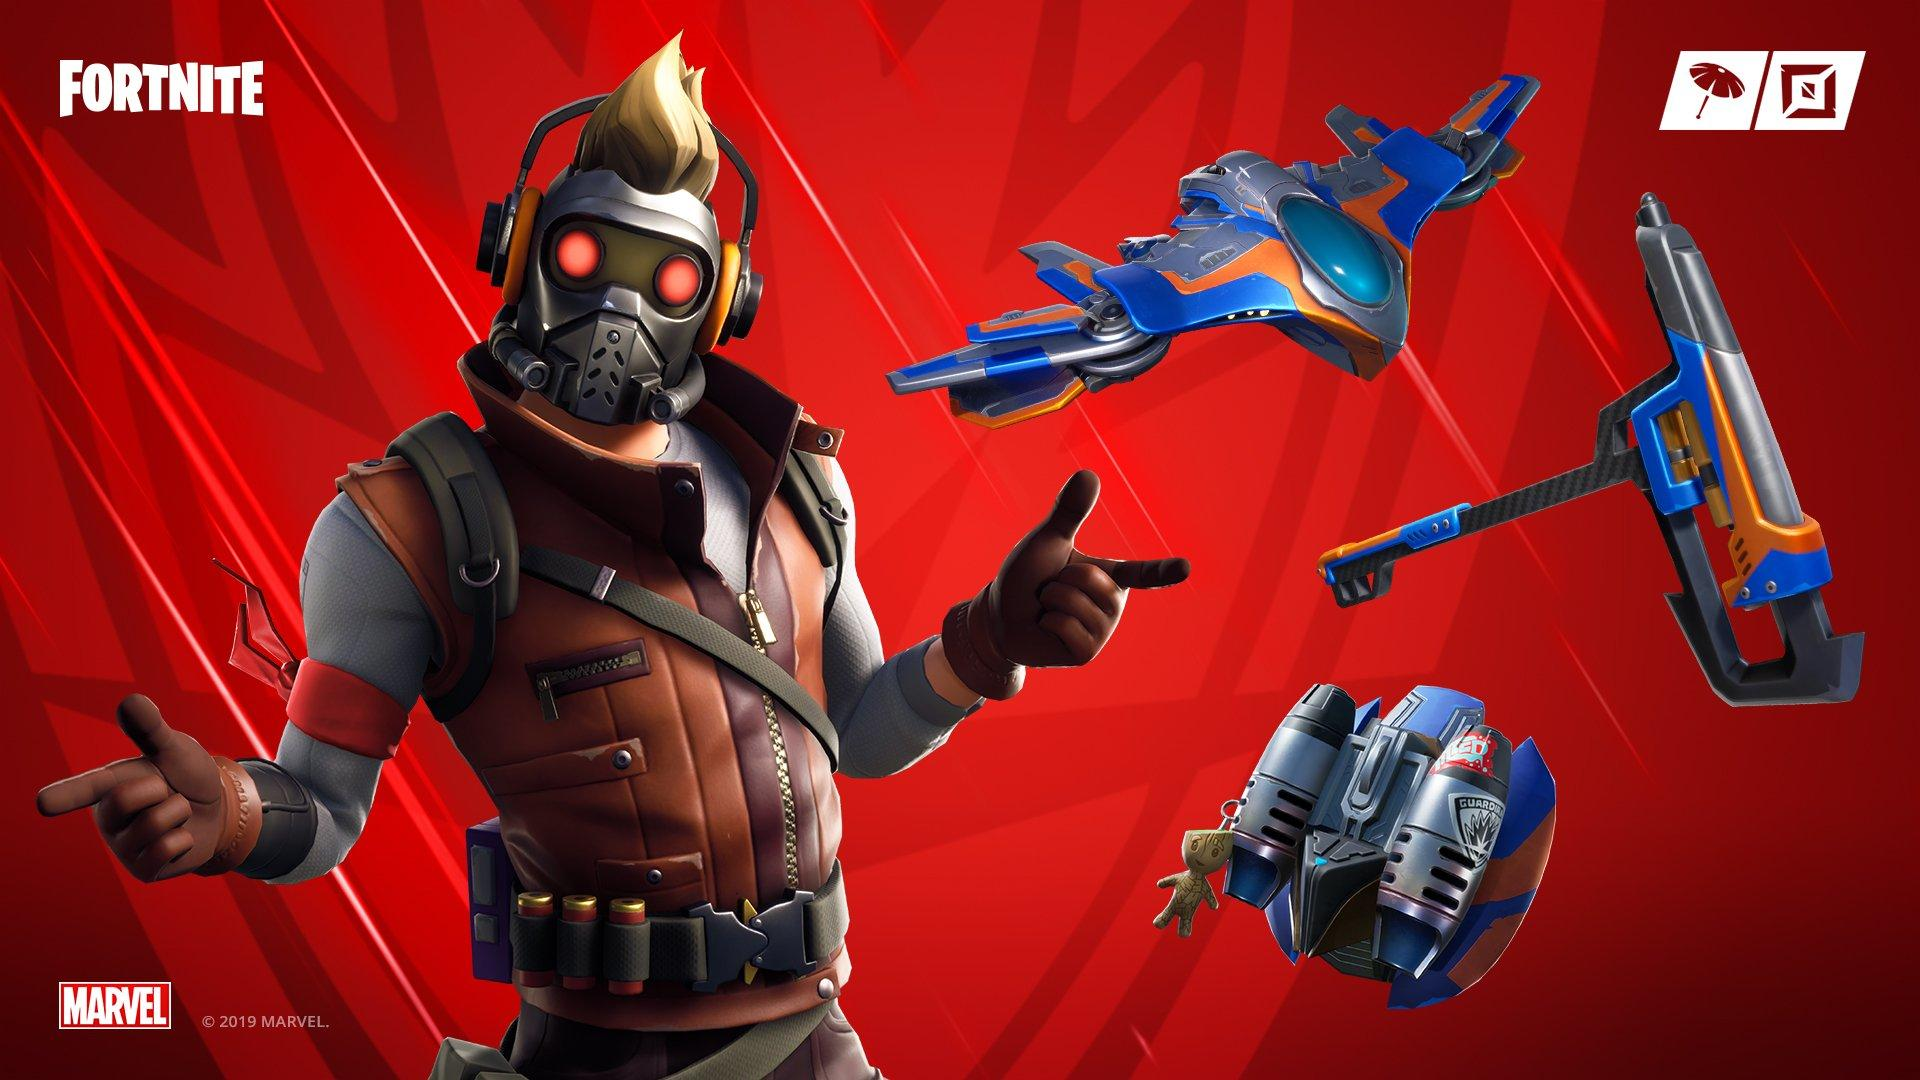 Fortnite X Avengers Event Adds A New Star Lord Outfit Xbox